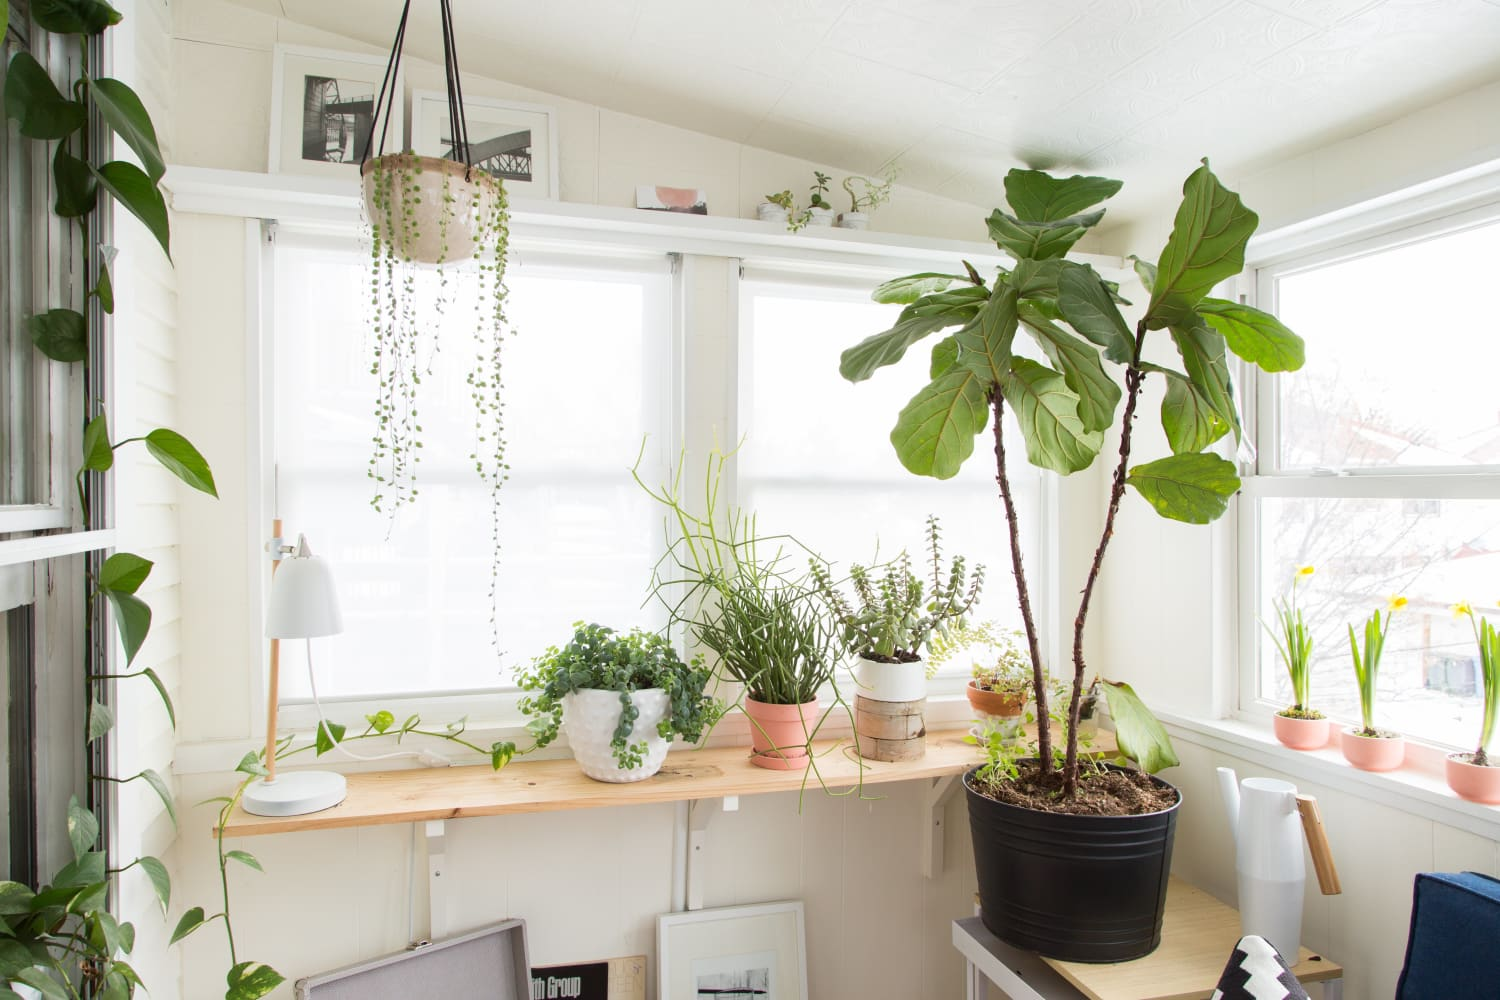 Bloomscape Just Launched New Tools That'll Make Anyone a Great Plant Parent